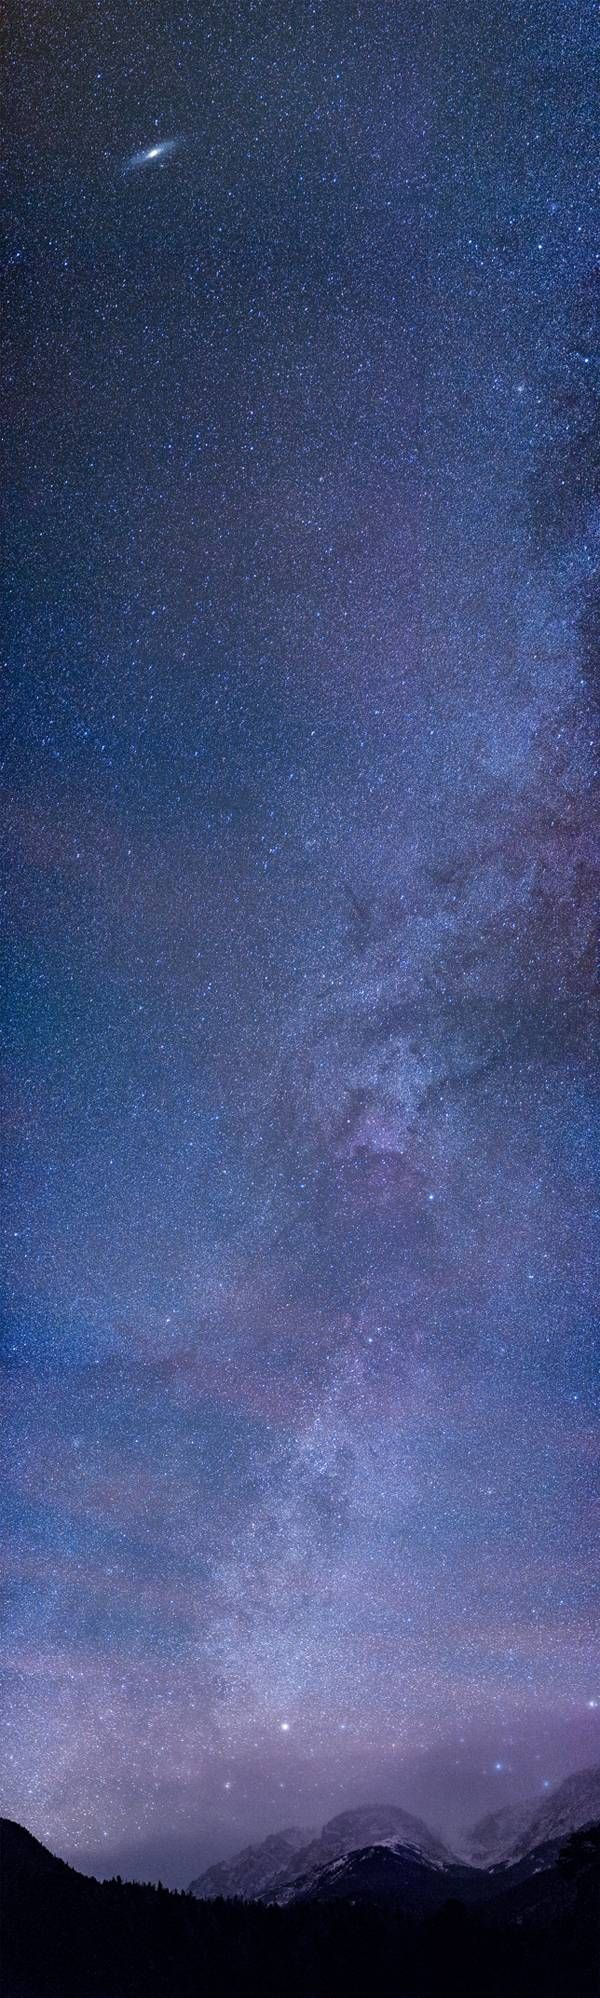 Can you spot the Milky Way and its closest neighbor, Andromeda, in this stunning vertical panorama?